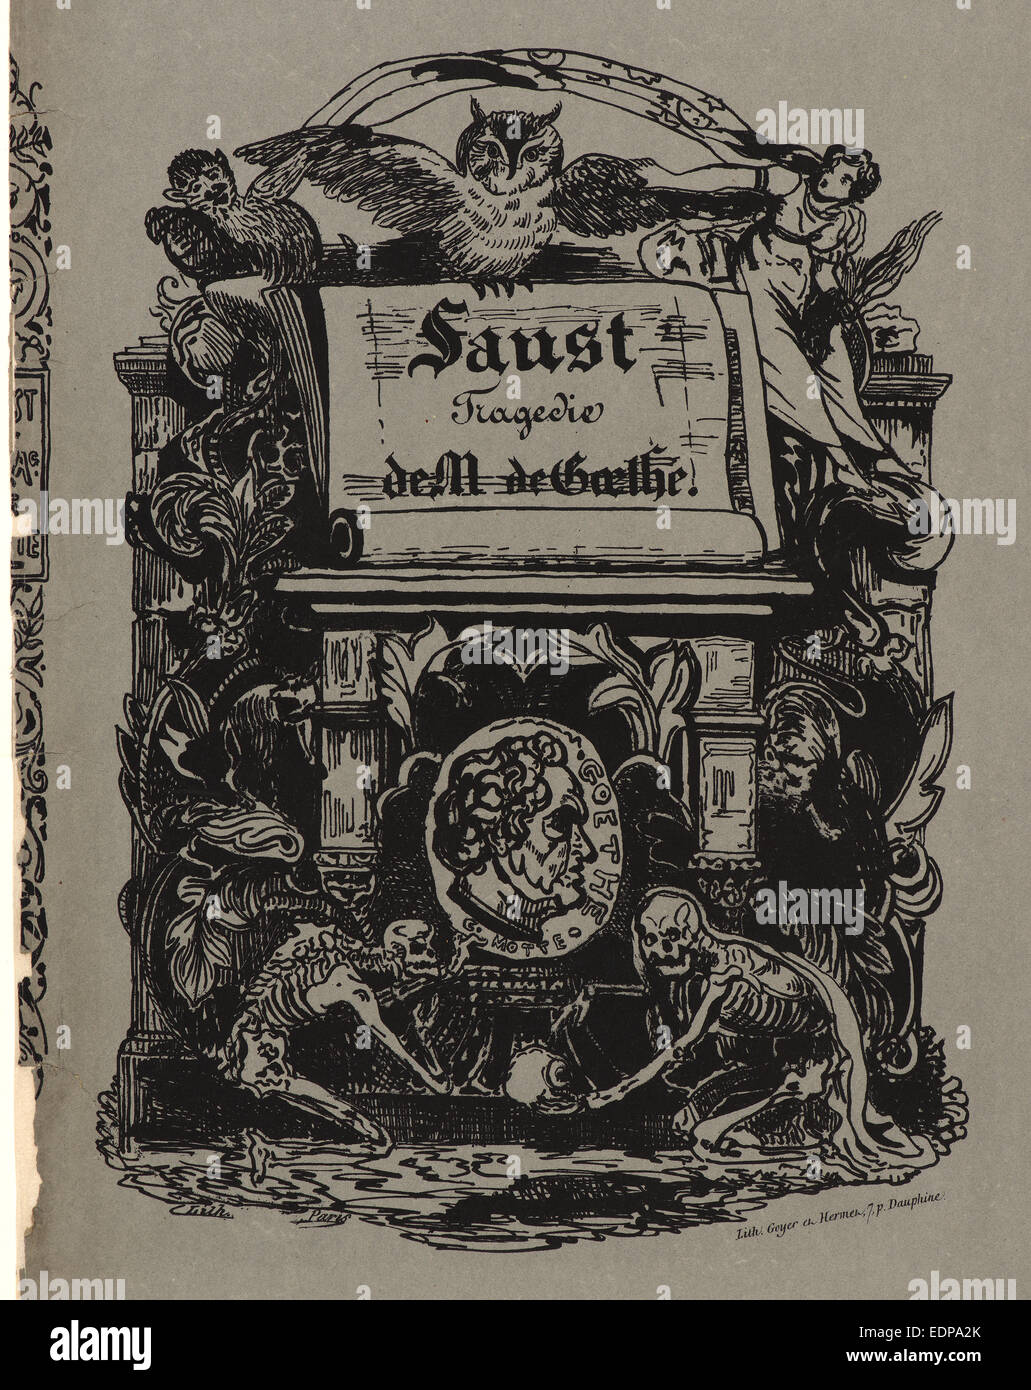 Eugène Delacroix (French, 1798 - 1863). Faust: portfolio cover (front), 1828. From Faust. Lithograph - Stock Image